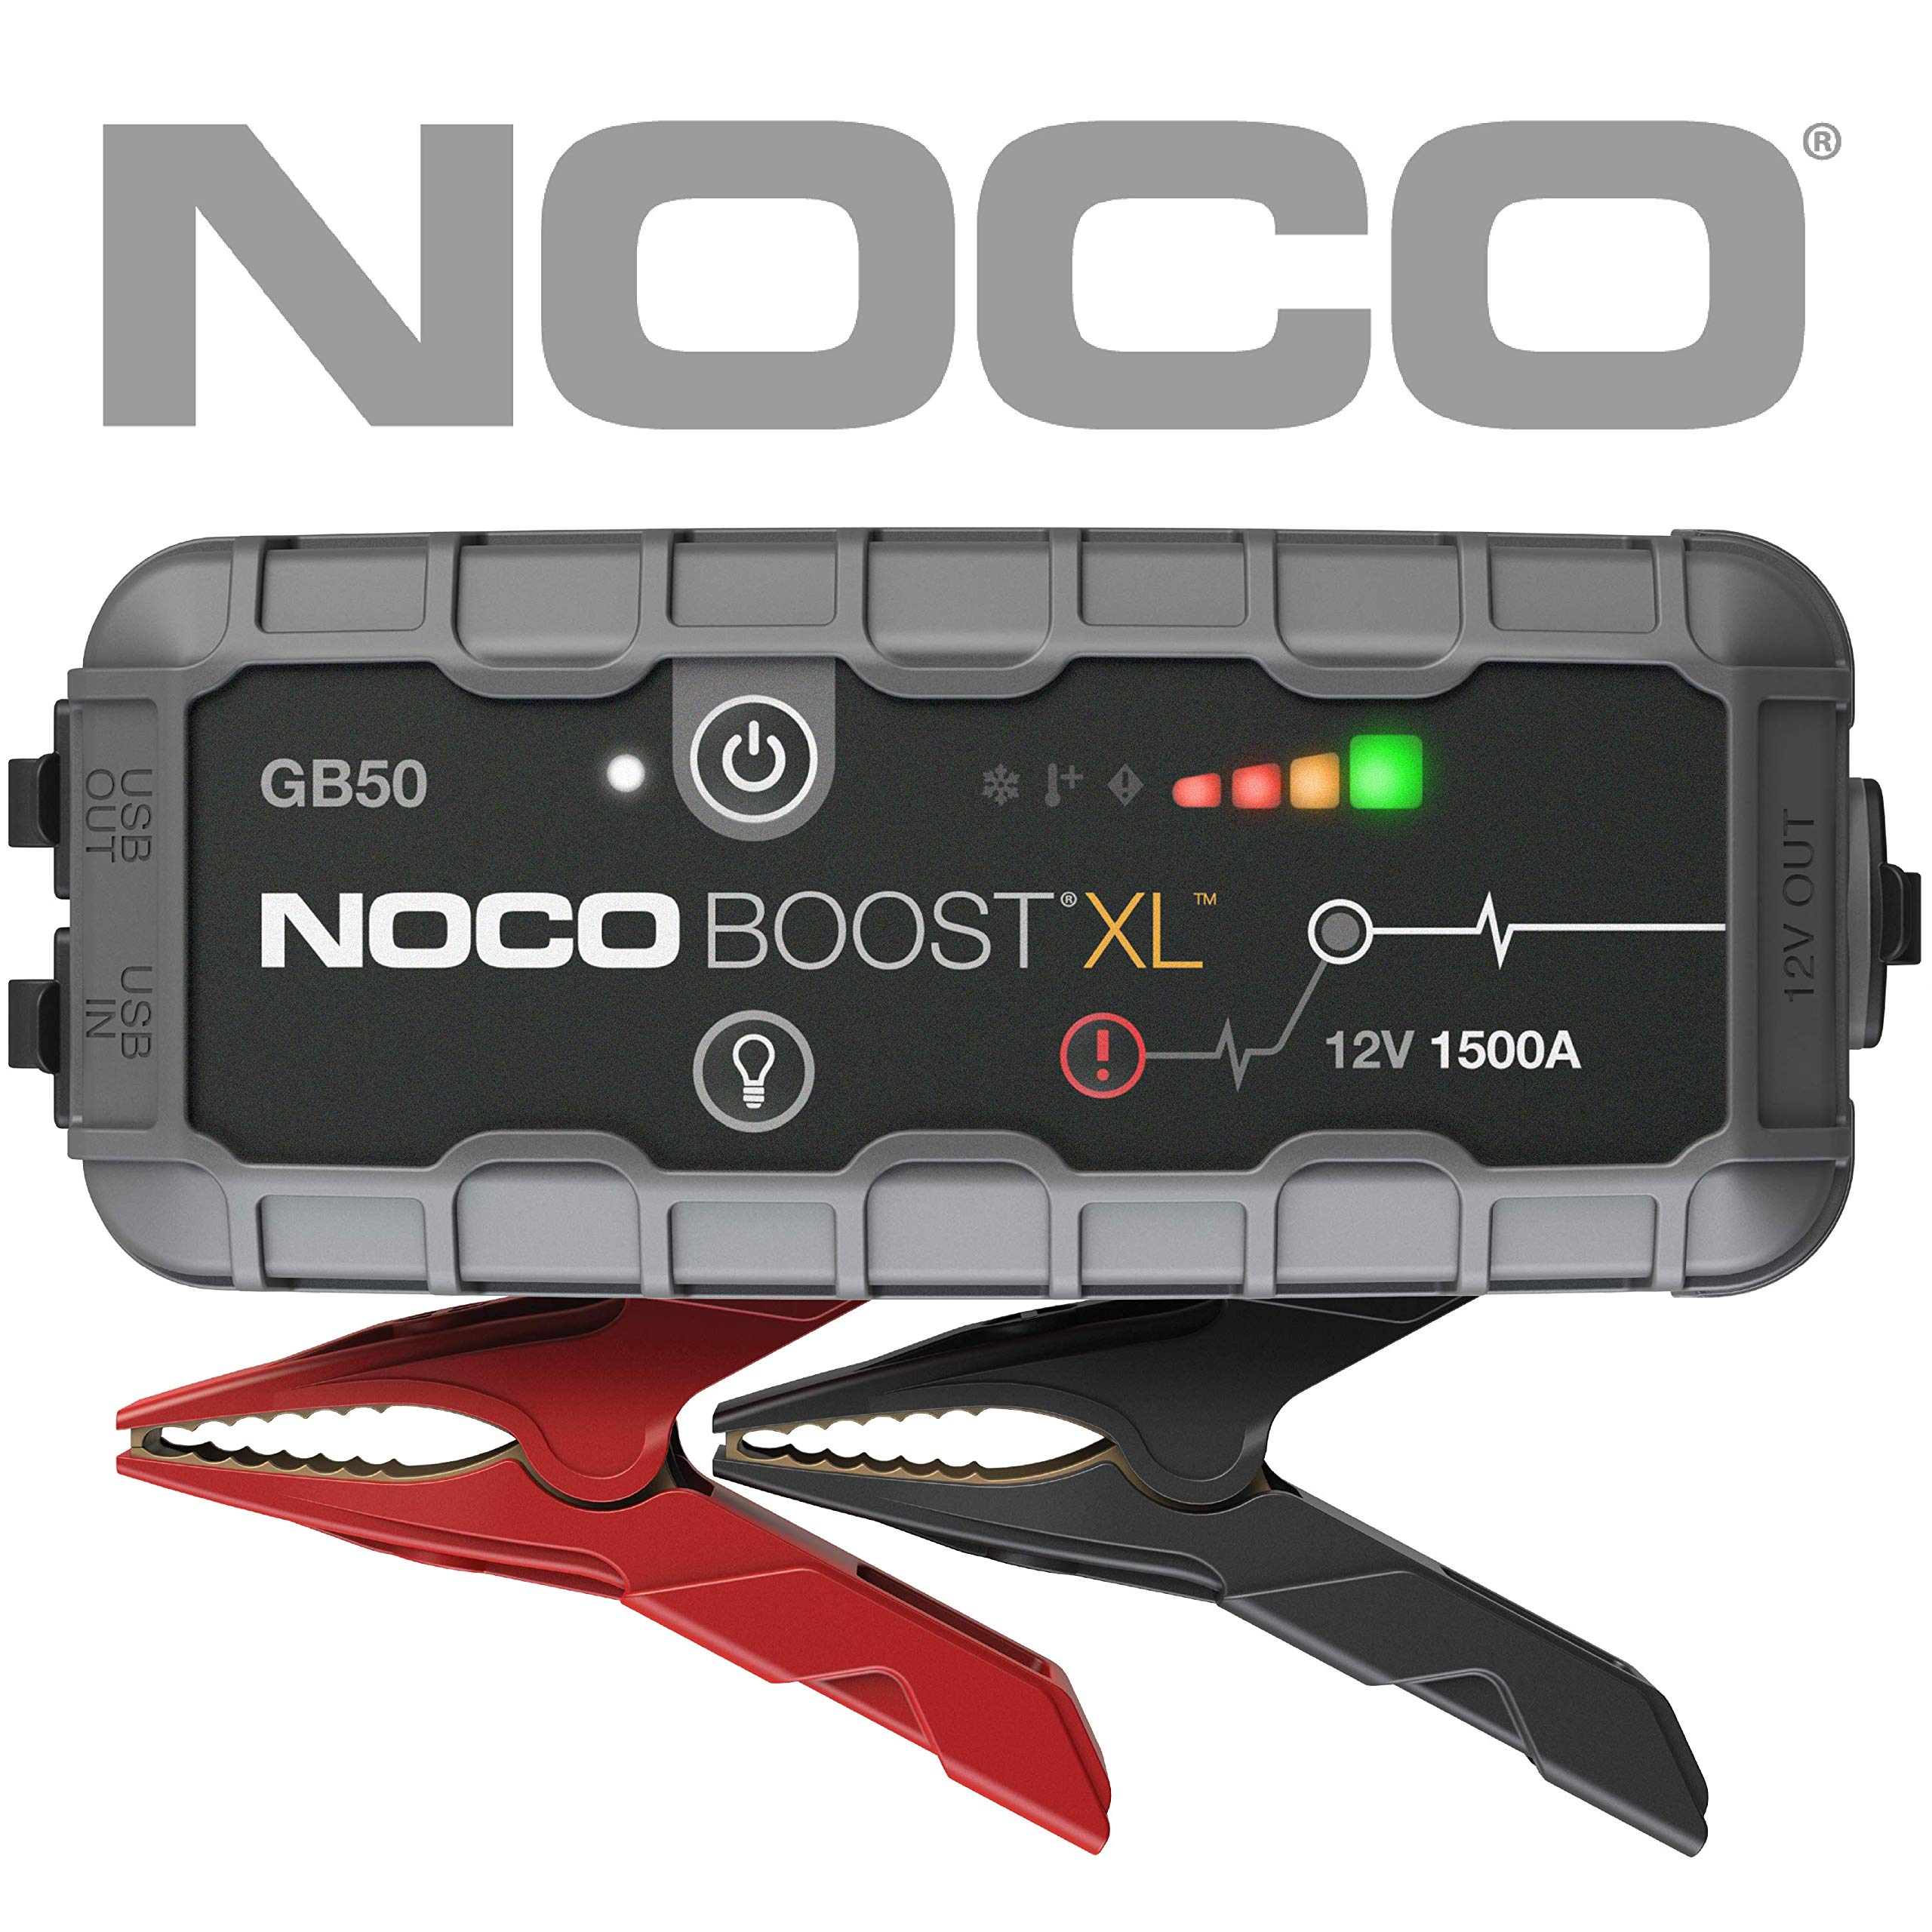 NOCO Boost XL GB50 1500 Amp 12V UltraSafe Lithium Jump Starter